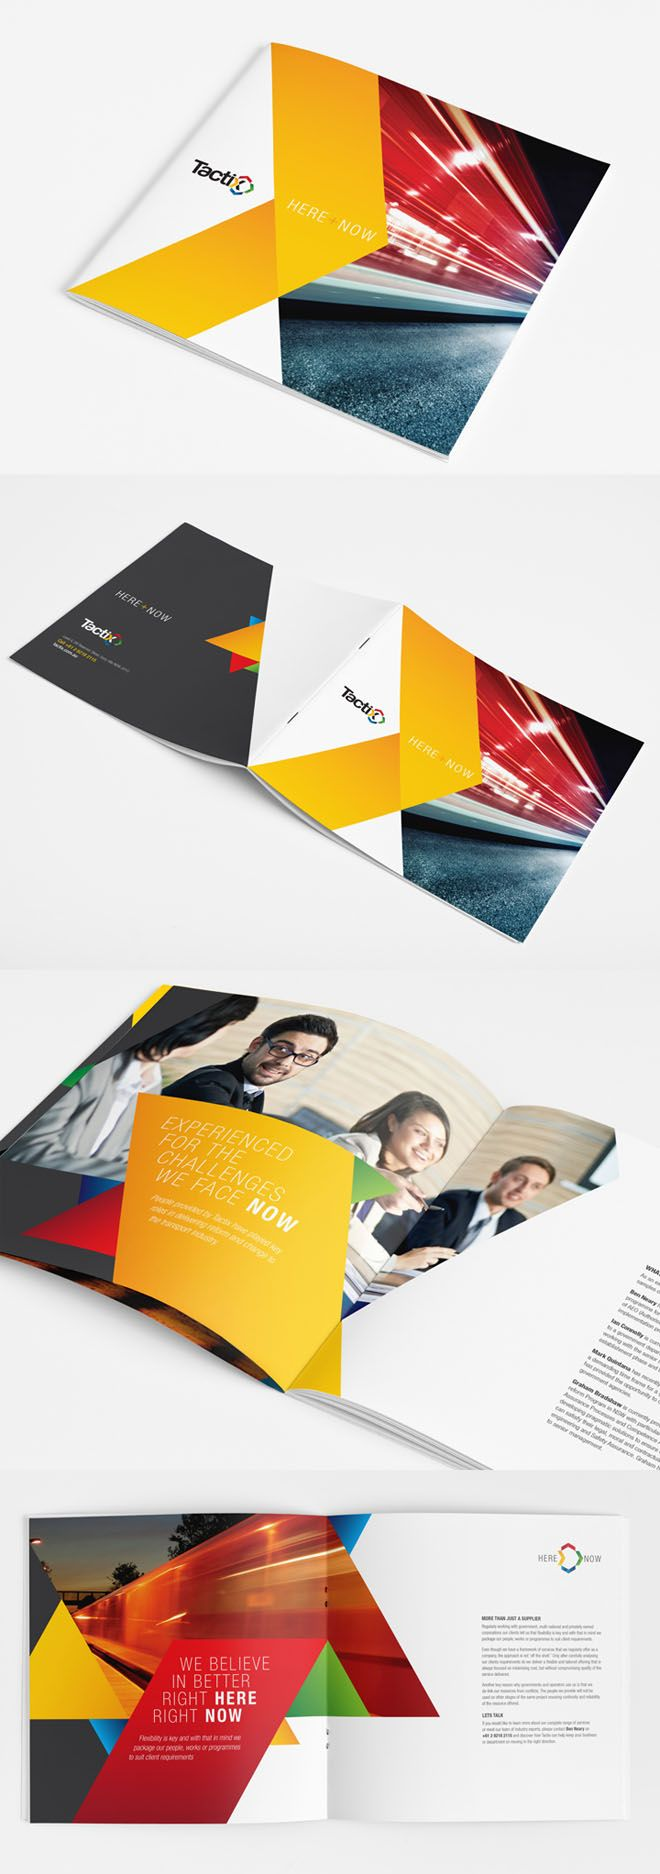 1000 ideas about brochure design on pinterest brochures for Interesting brochure designs